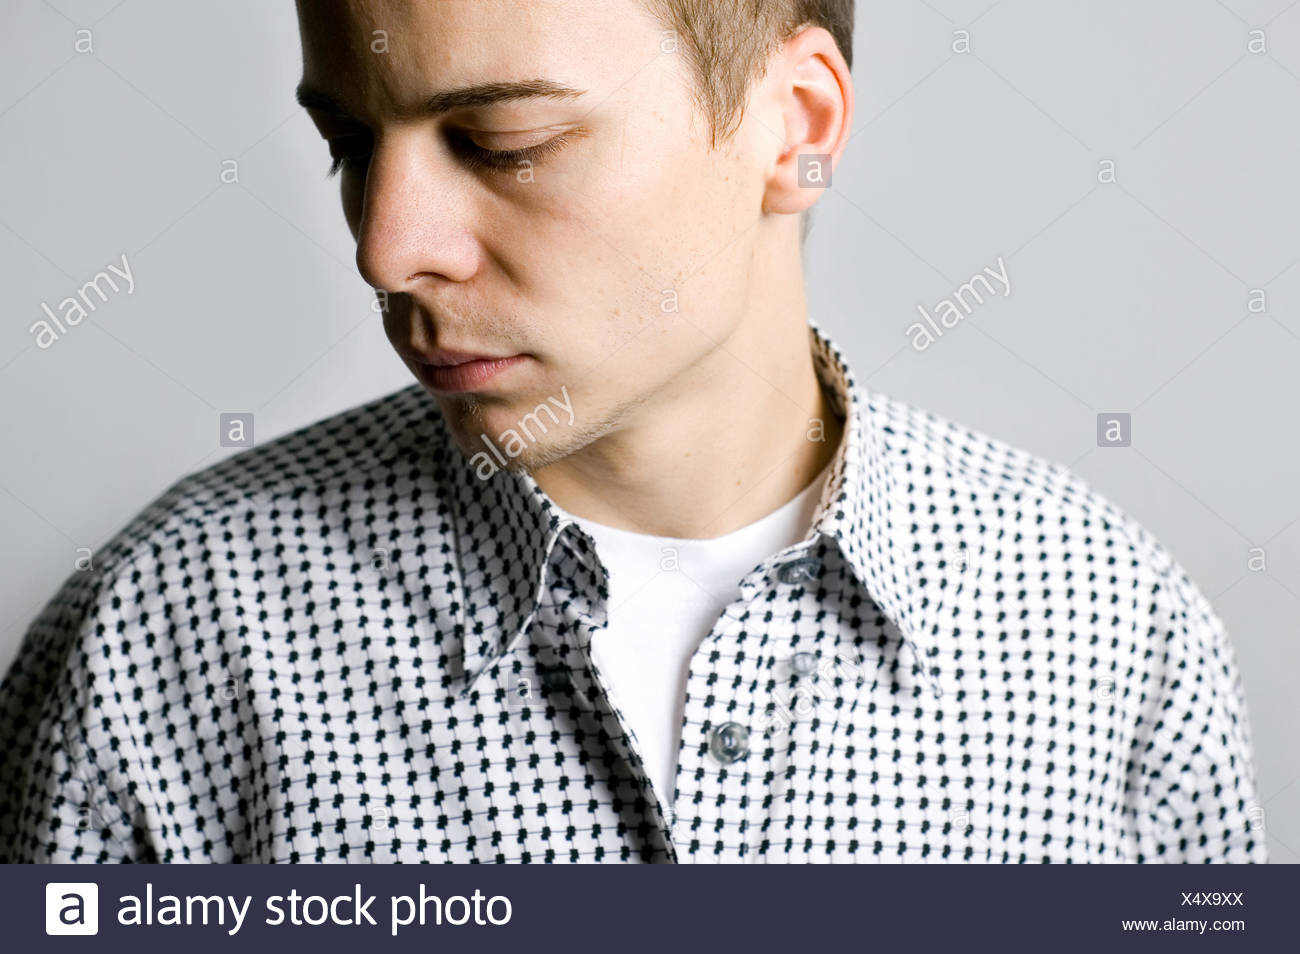 young man,sad,looking down - Stock Image